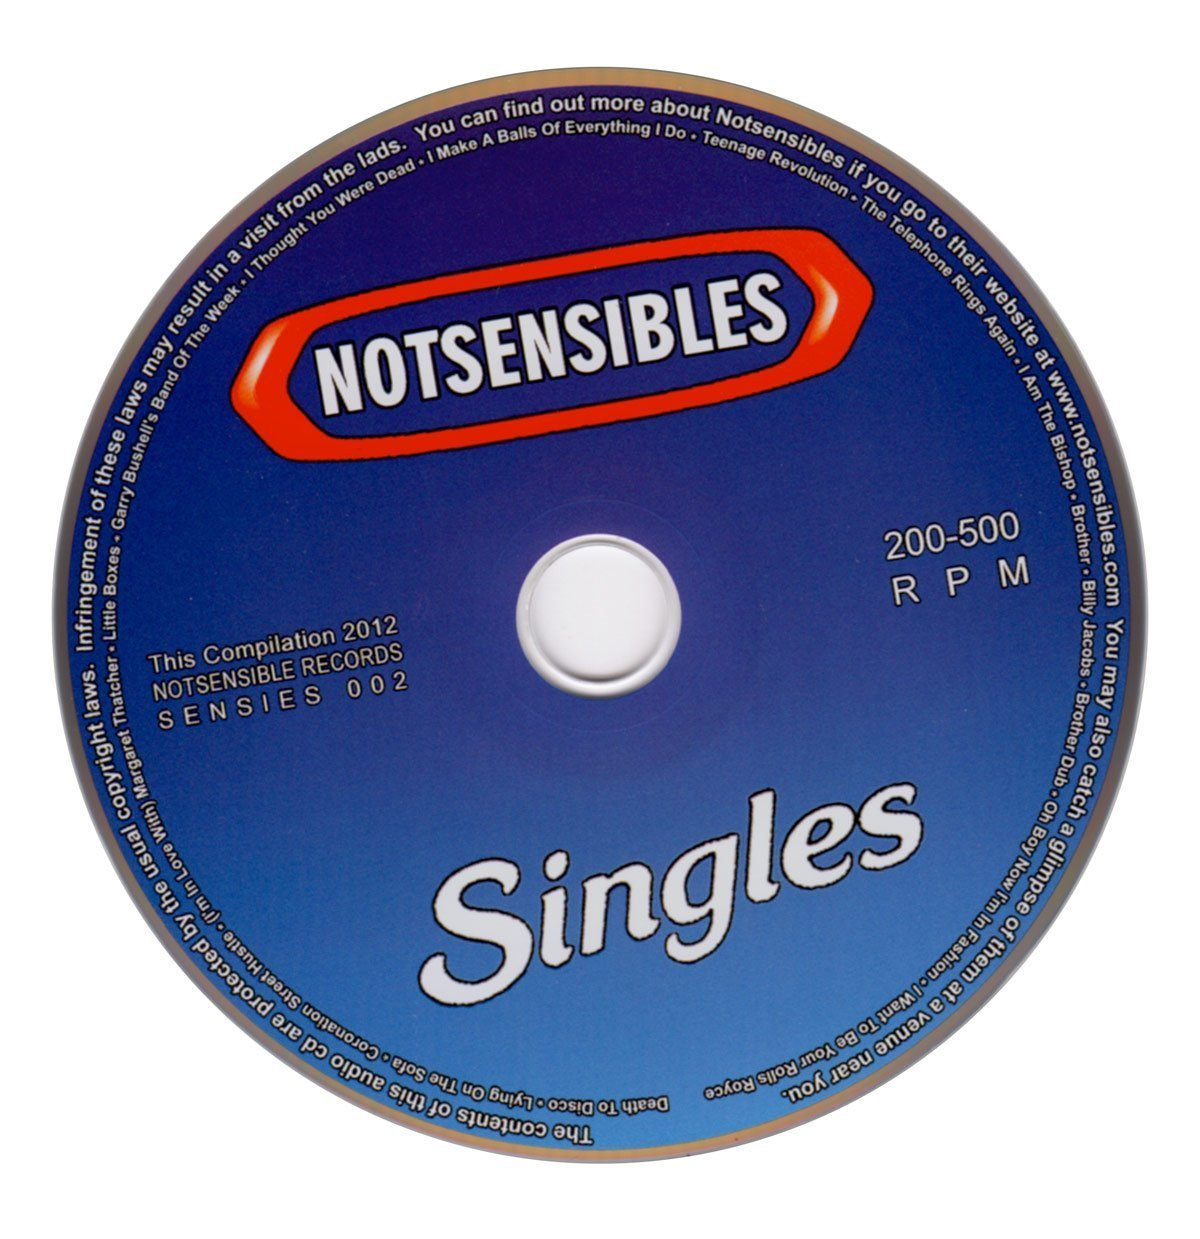 NOTSENSIBLES - Singles CD - From Eli Records